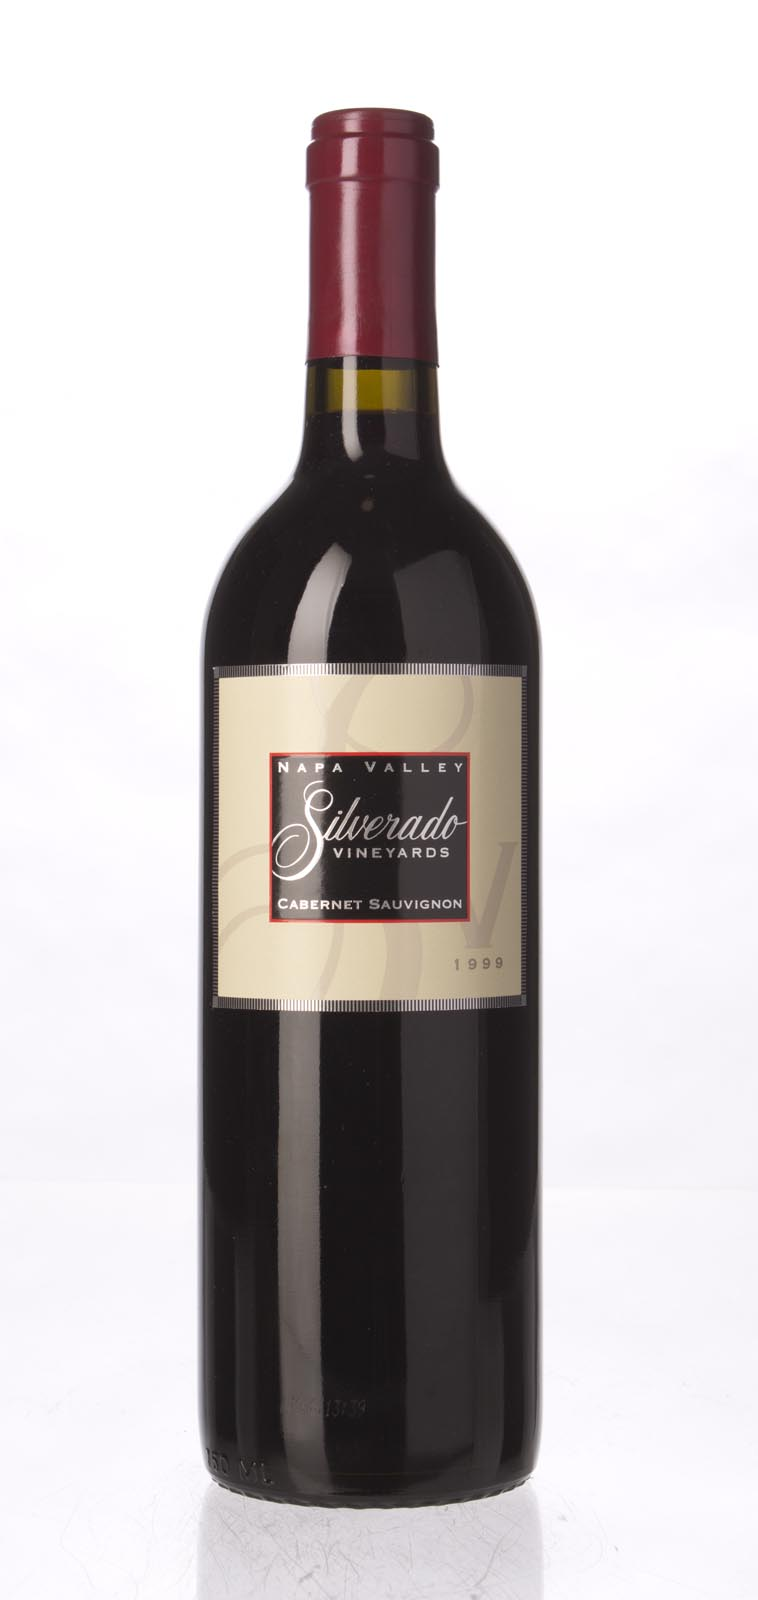 Silverado Vineyards Cabernet Sauvignon Napa Valley 1999, 750mL (WS91) from The BPW - Merchants of rare and fine wines.